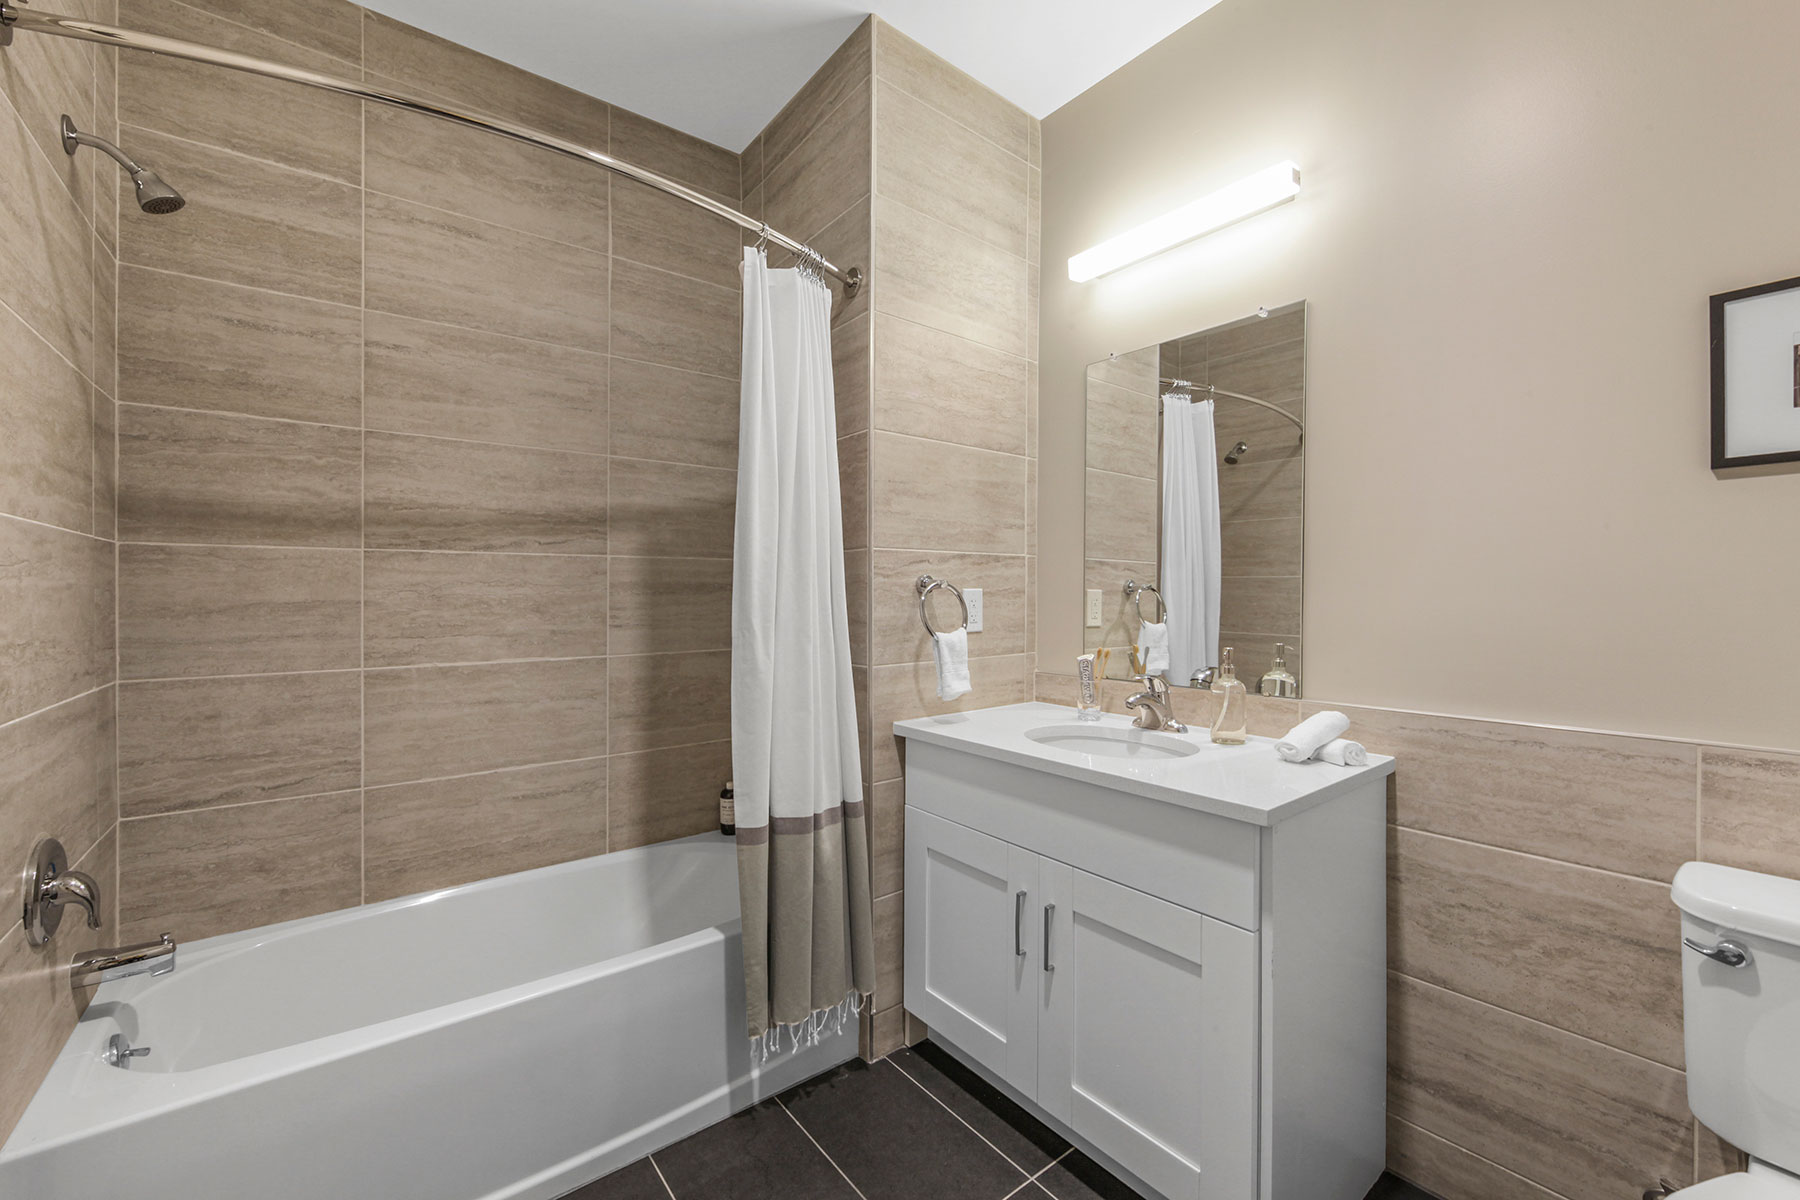 Modern bathroom with double cabinet white vanity, fully tiled tub shower, tiled floor and tiling halfway up wall